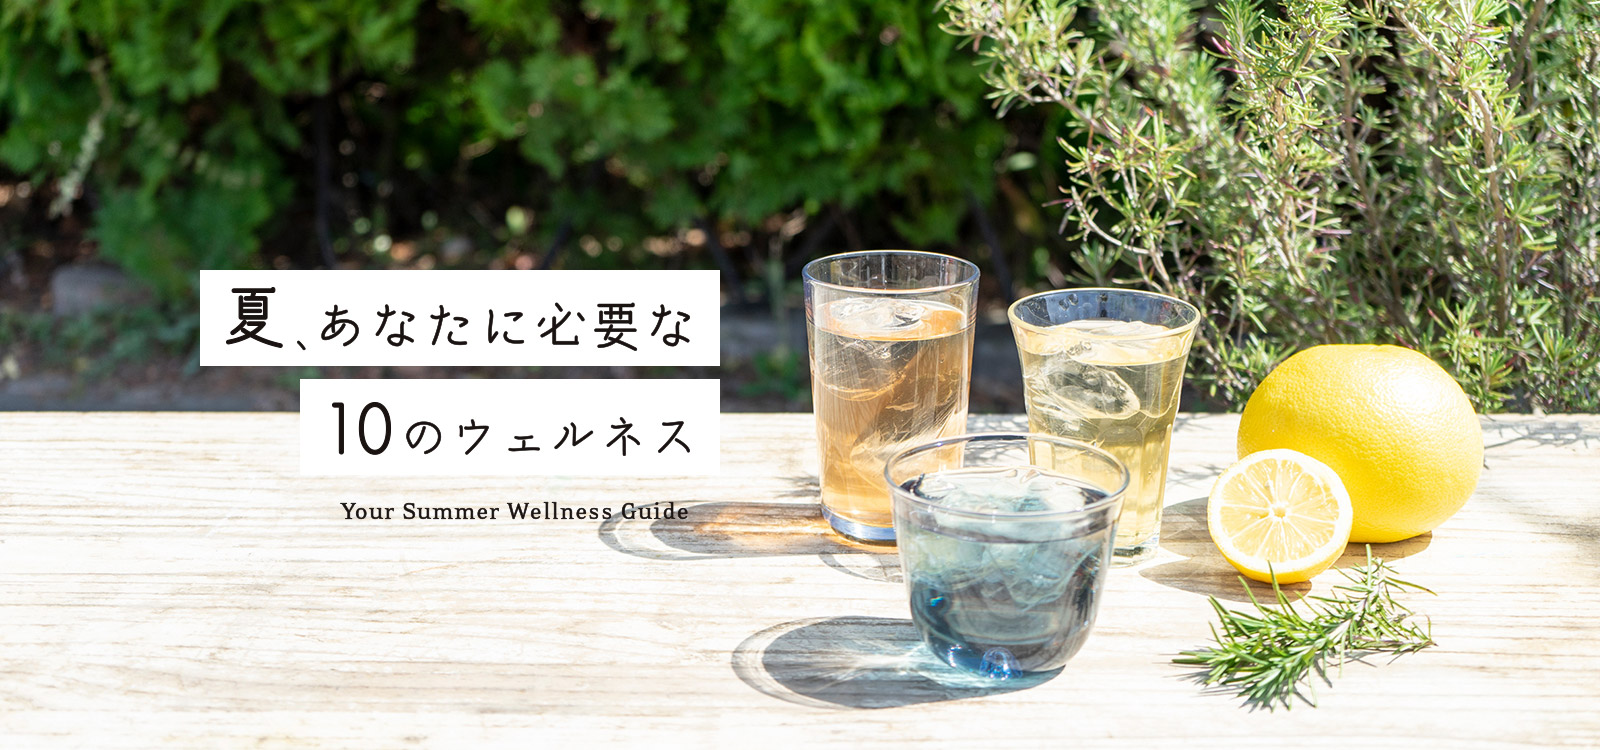 Natural Lifestyle -Summer With Aroma&Herbs- [ハーブとアロマで私の快適サマーライフ]